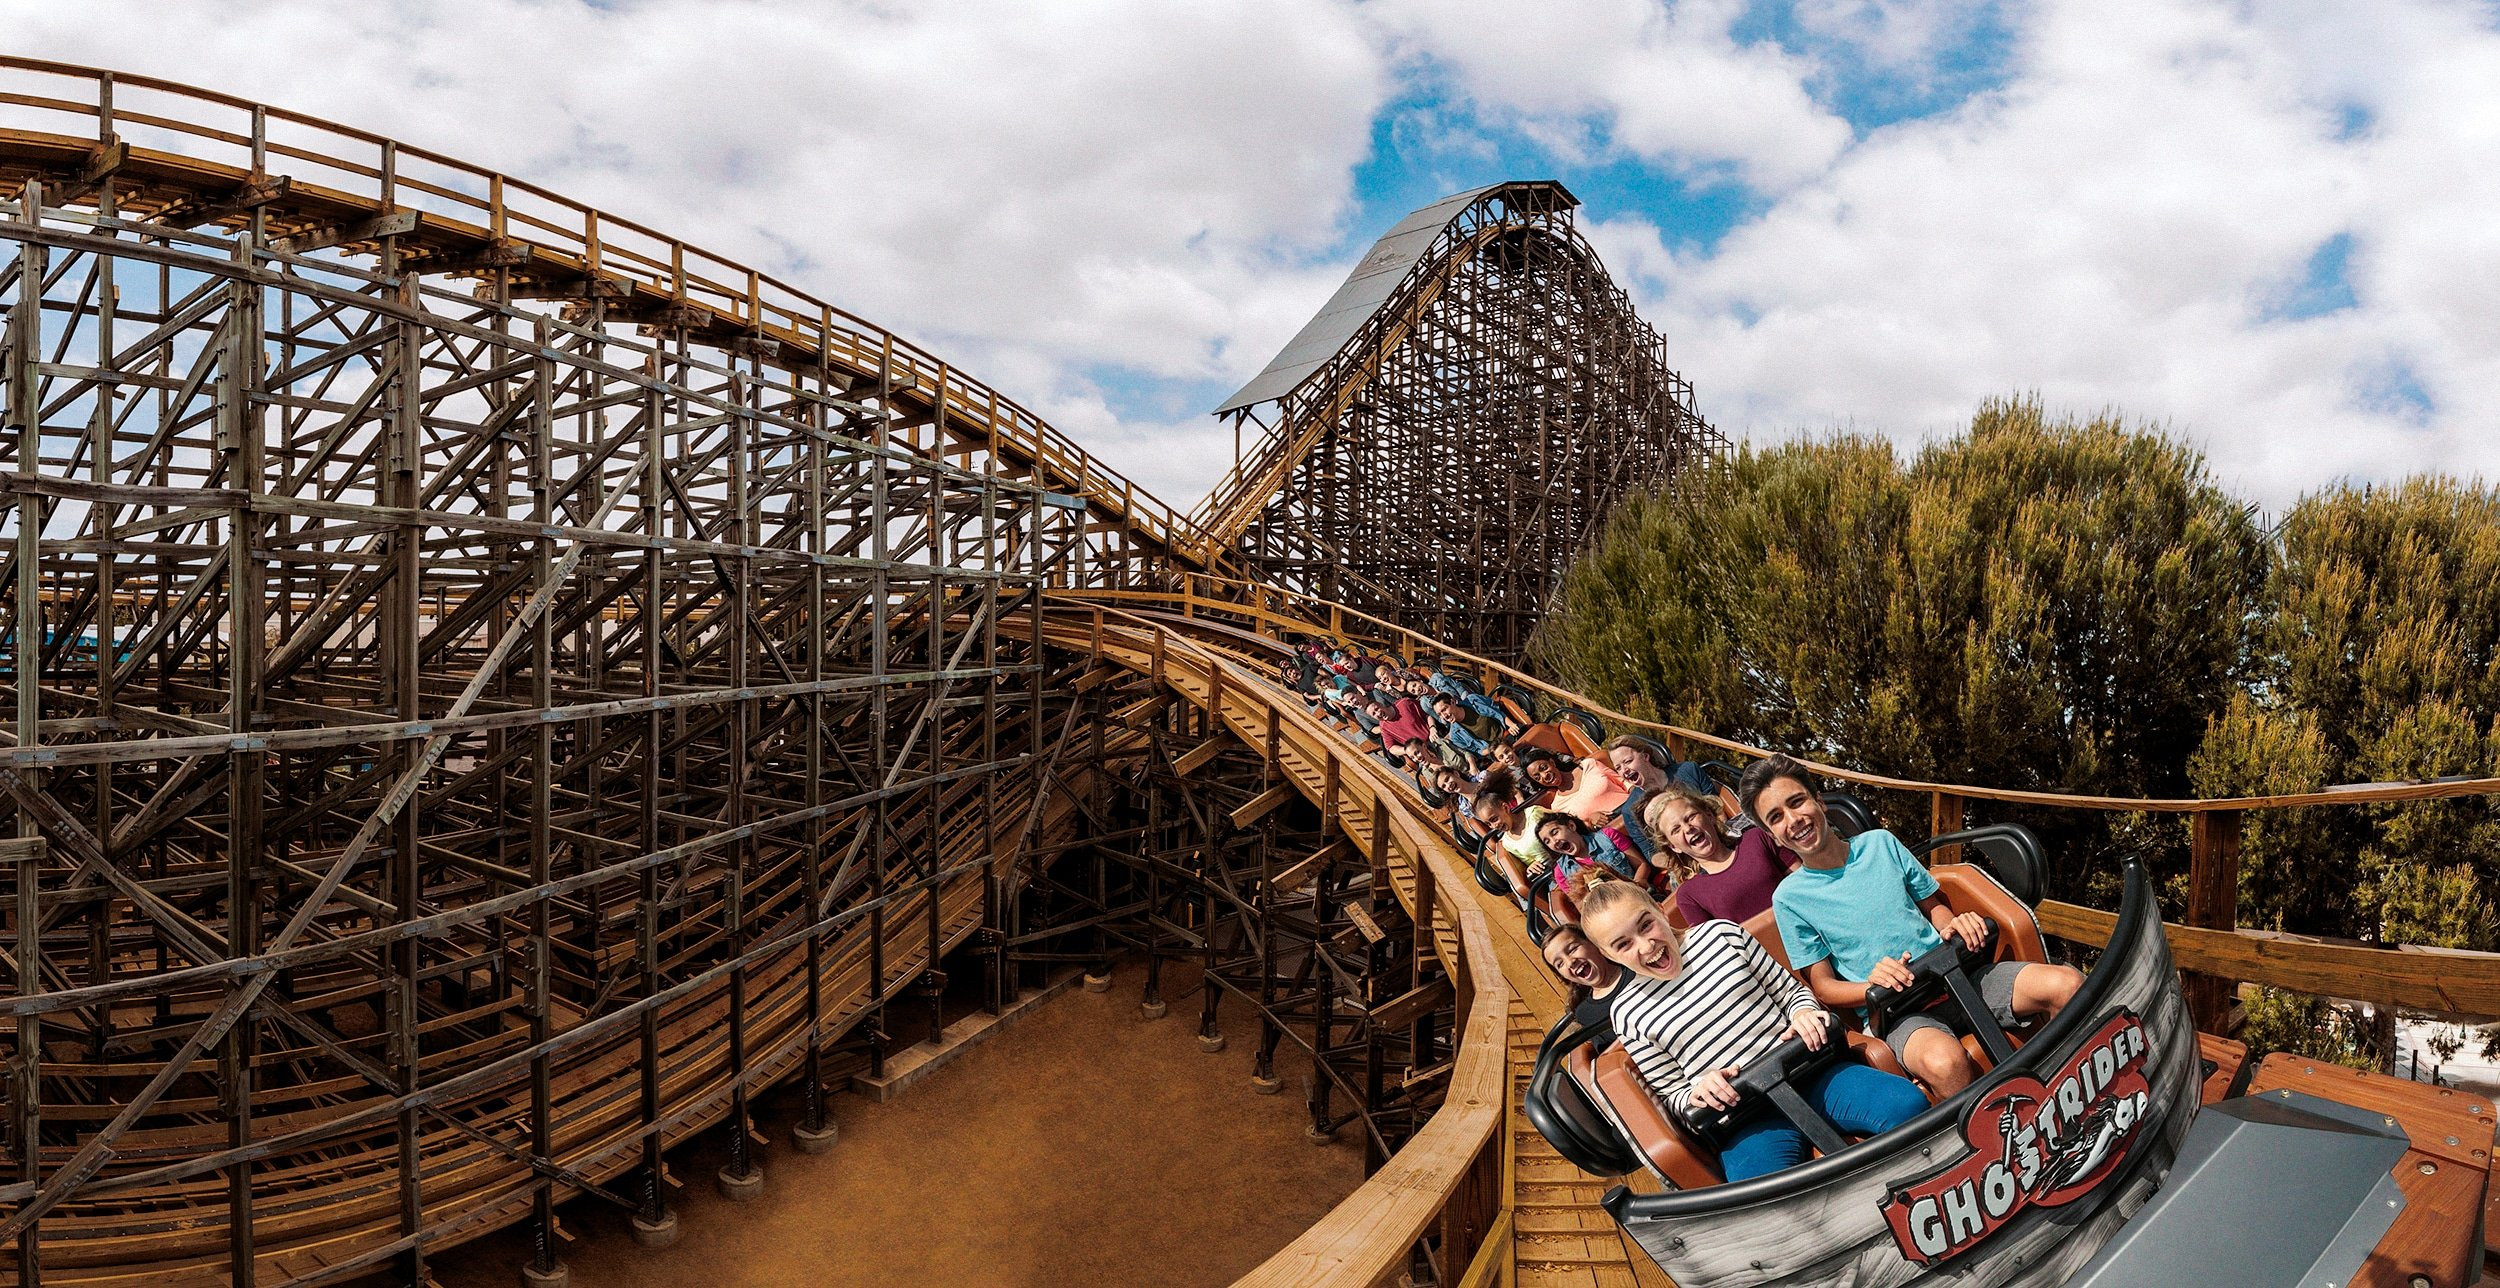 Guests ride the Ghost Rider roller coaster.